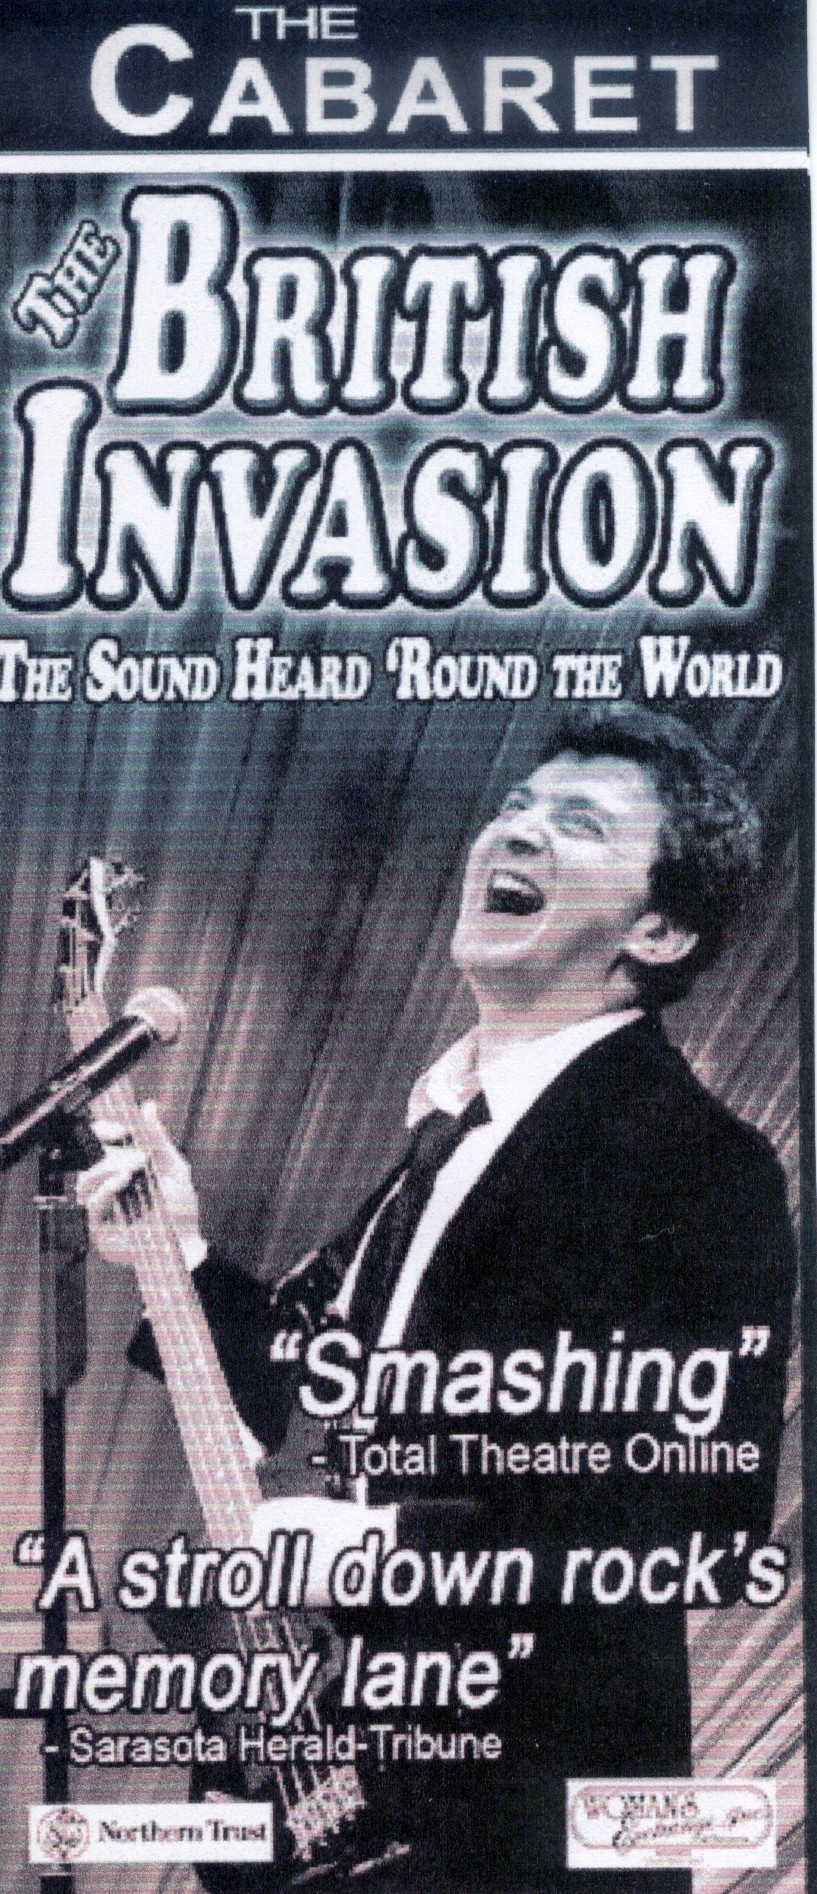 British Invasion Ad.jpg